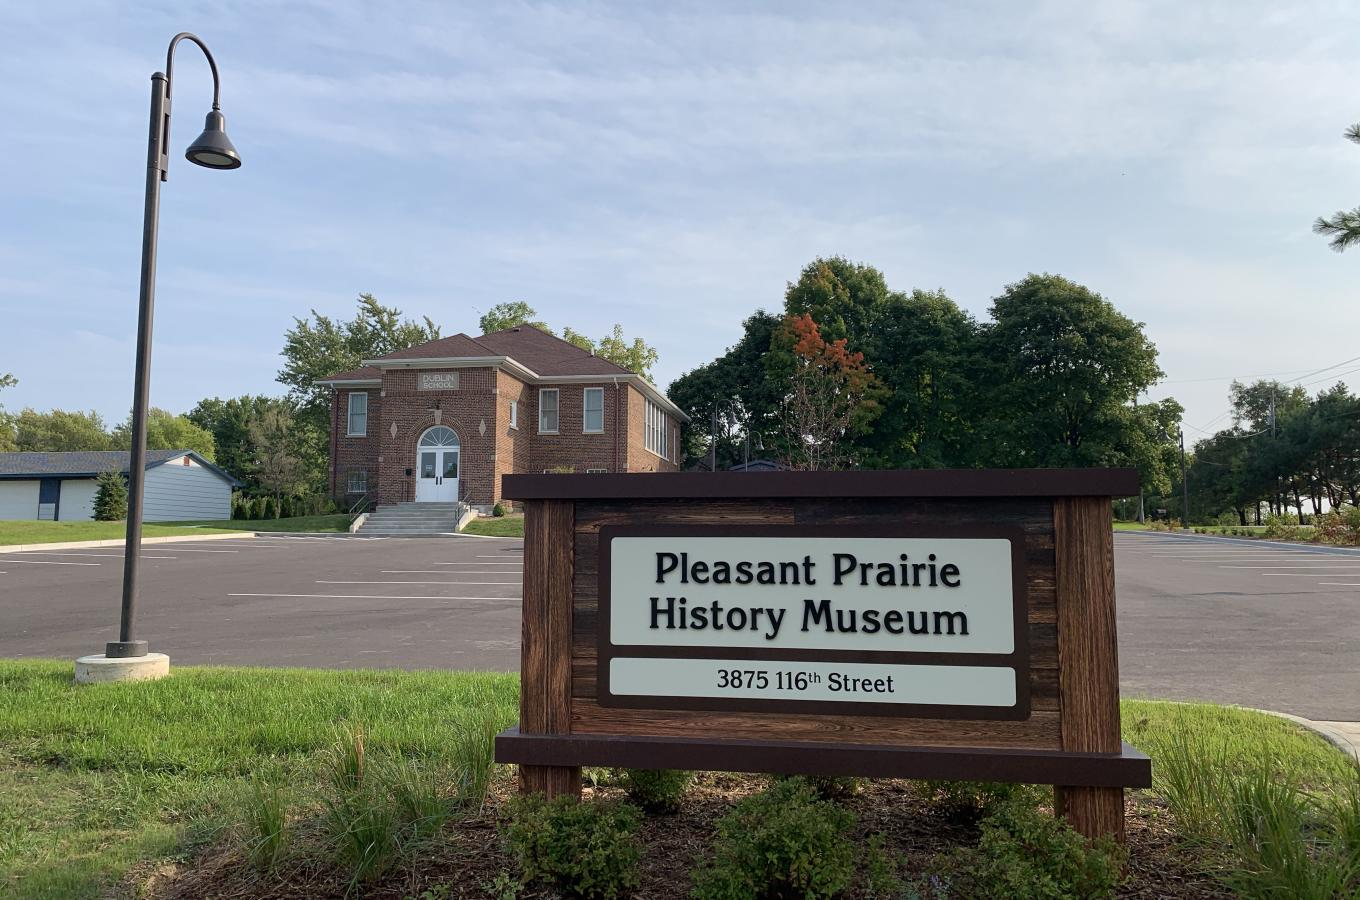 Entrance at the Pleasant Prairie History Museum